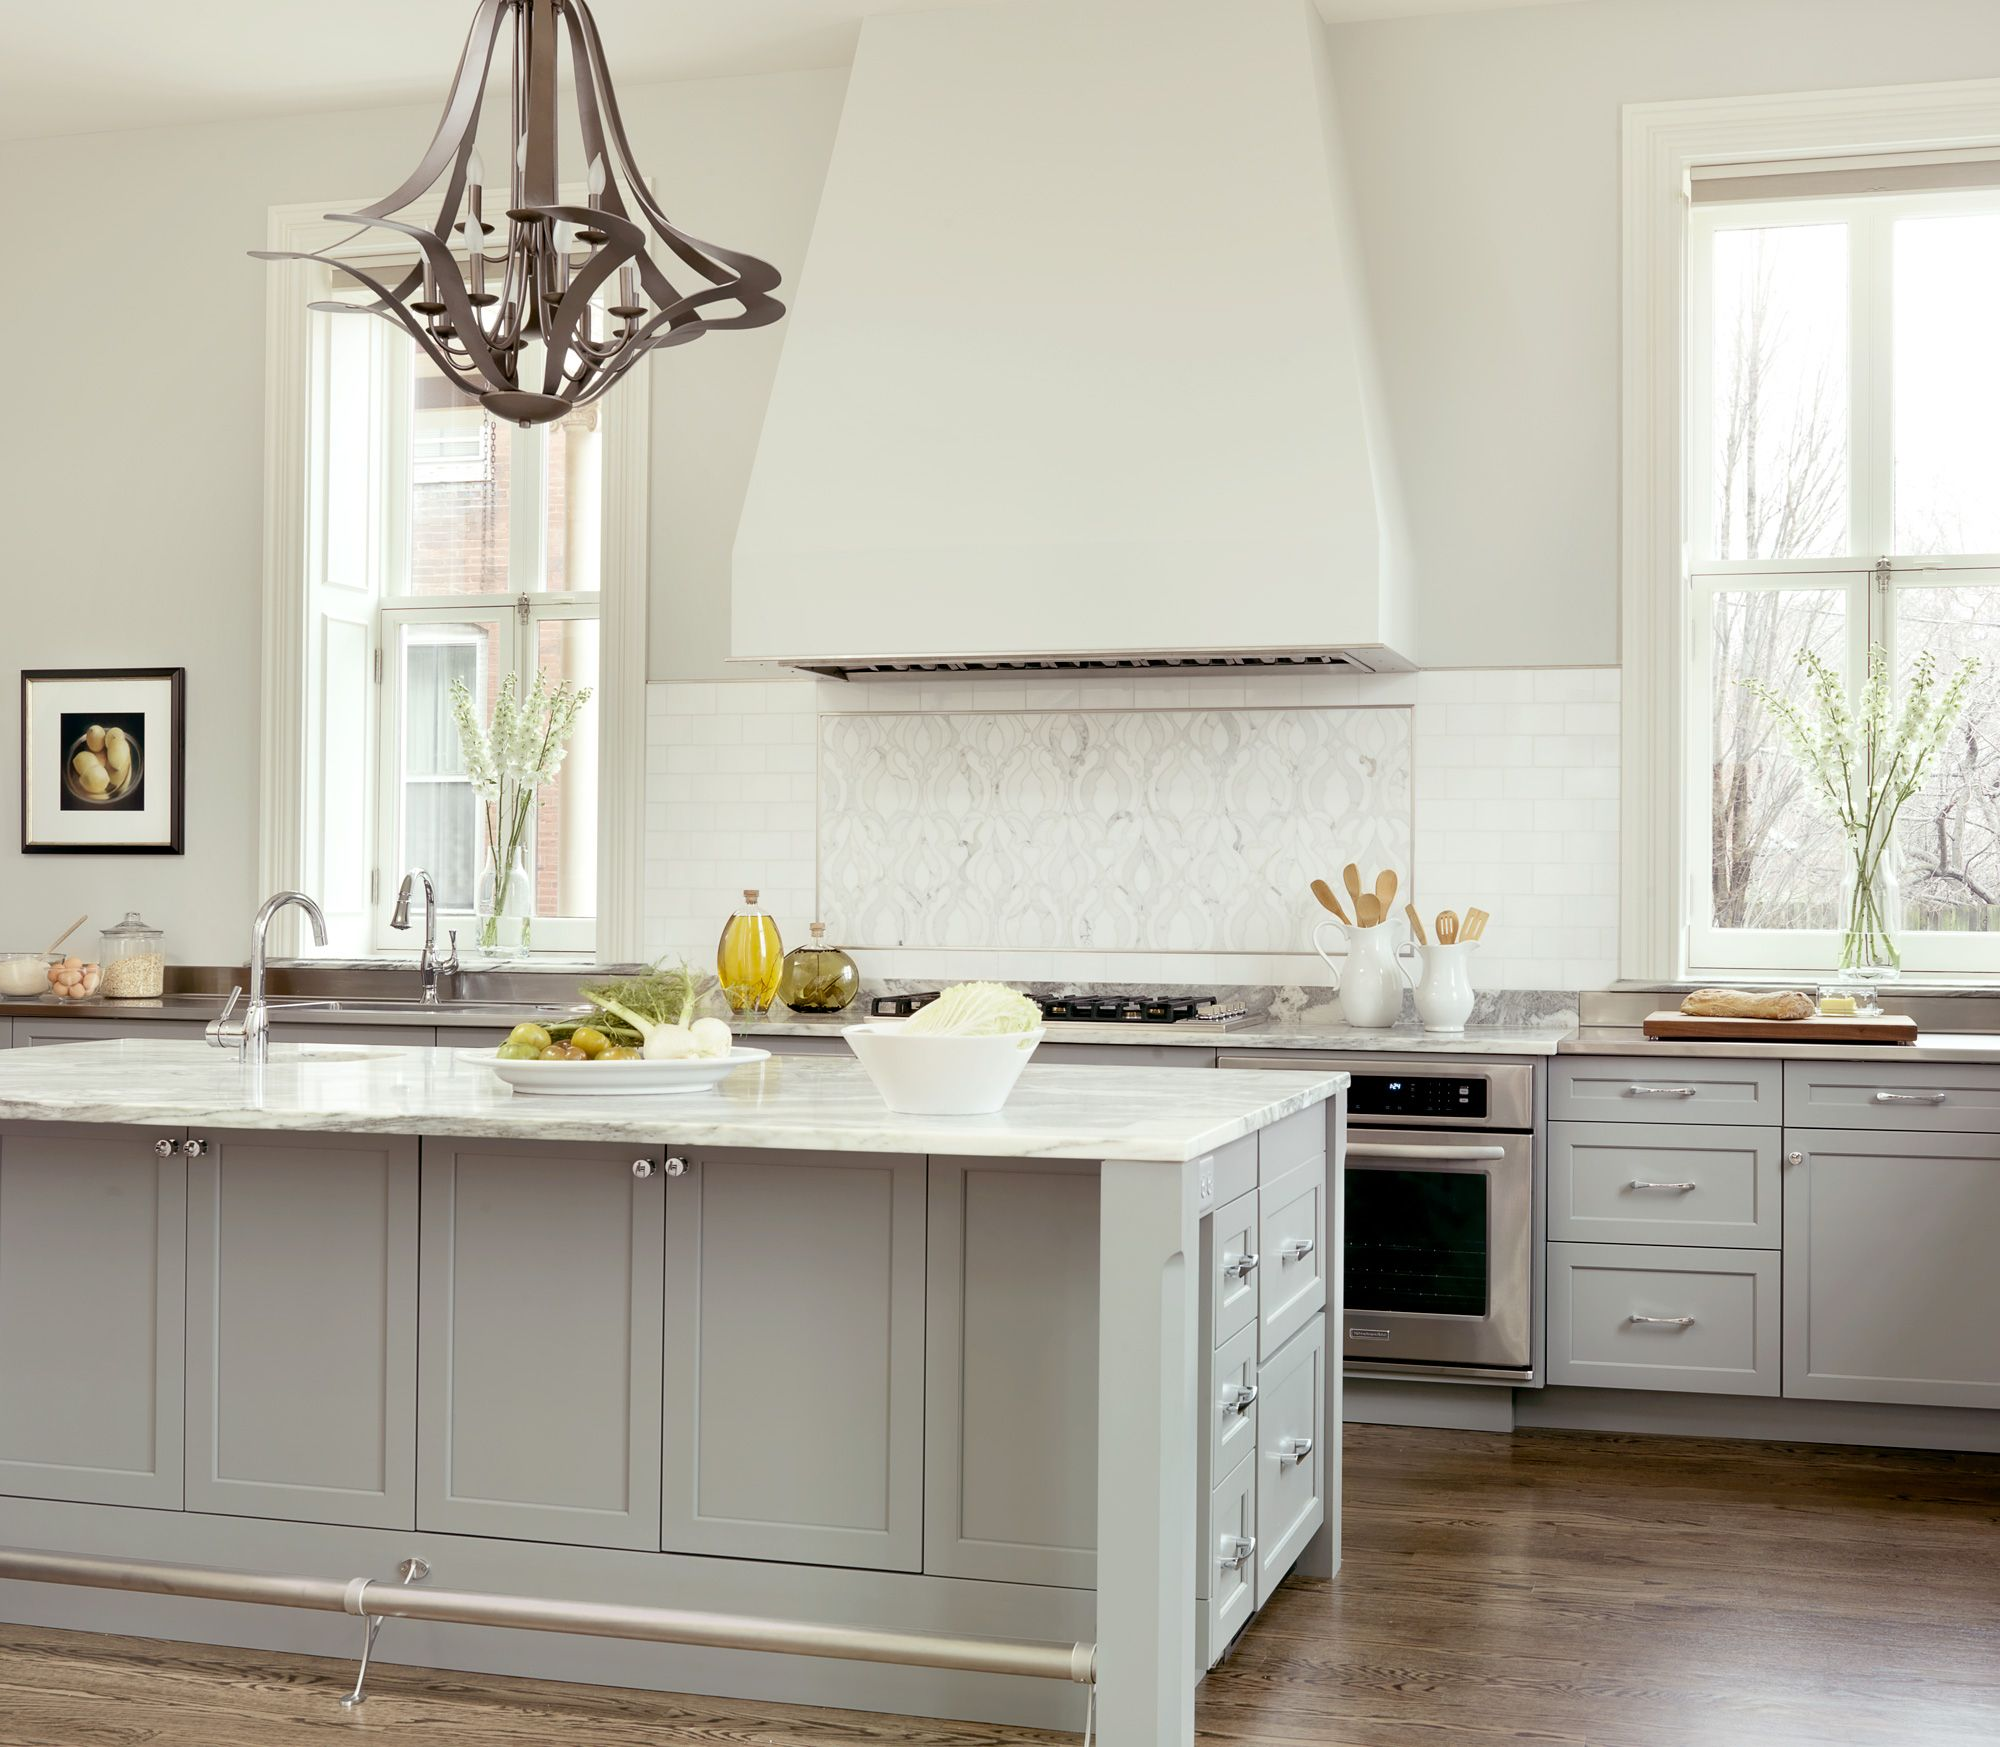 Grey Painted Kitchen Walls A Beautiful Kitchen With Painted Cabinets Stainless Steel